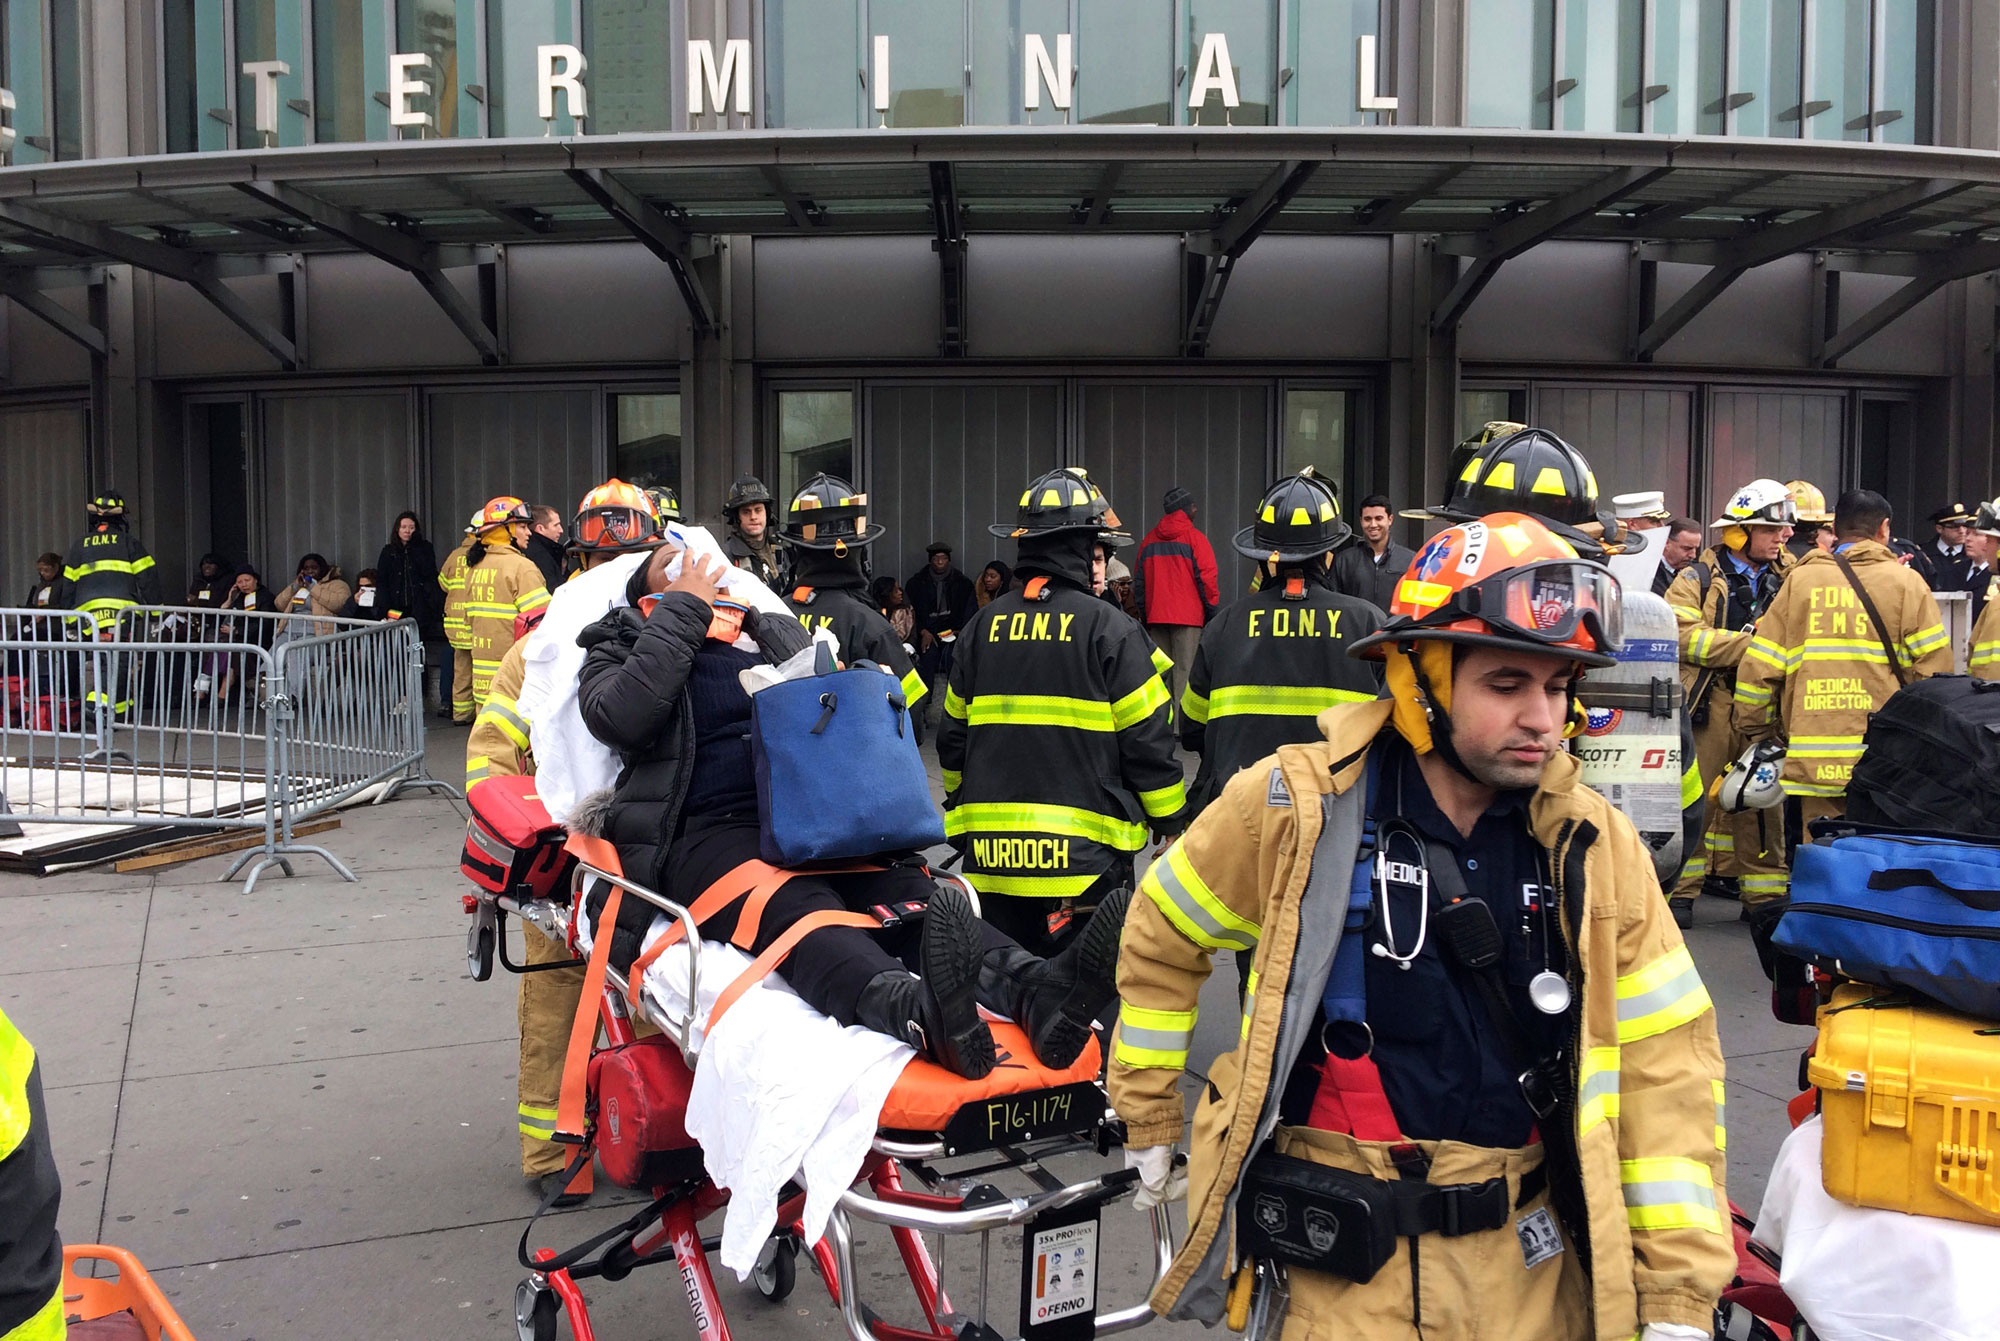 Footage Shows Scene in Brooklyn Station After Train Derailment